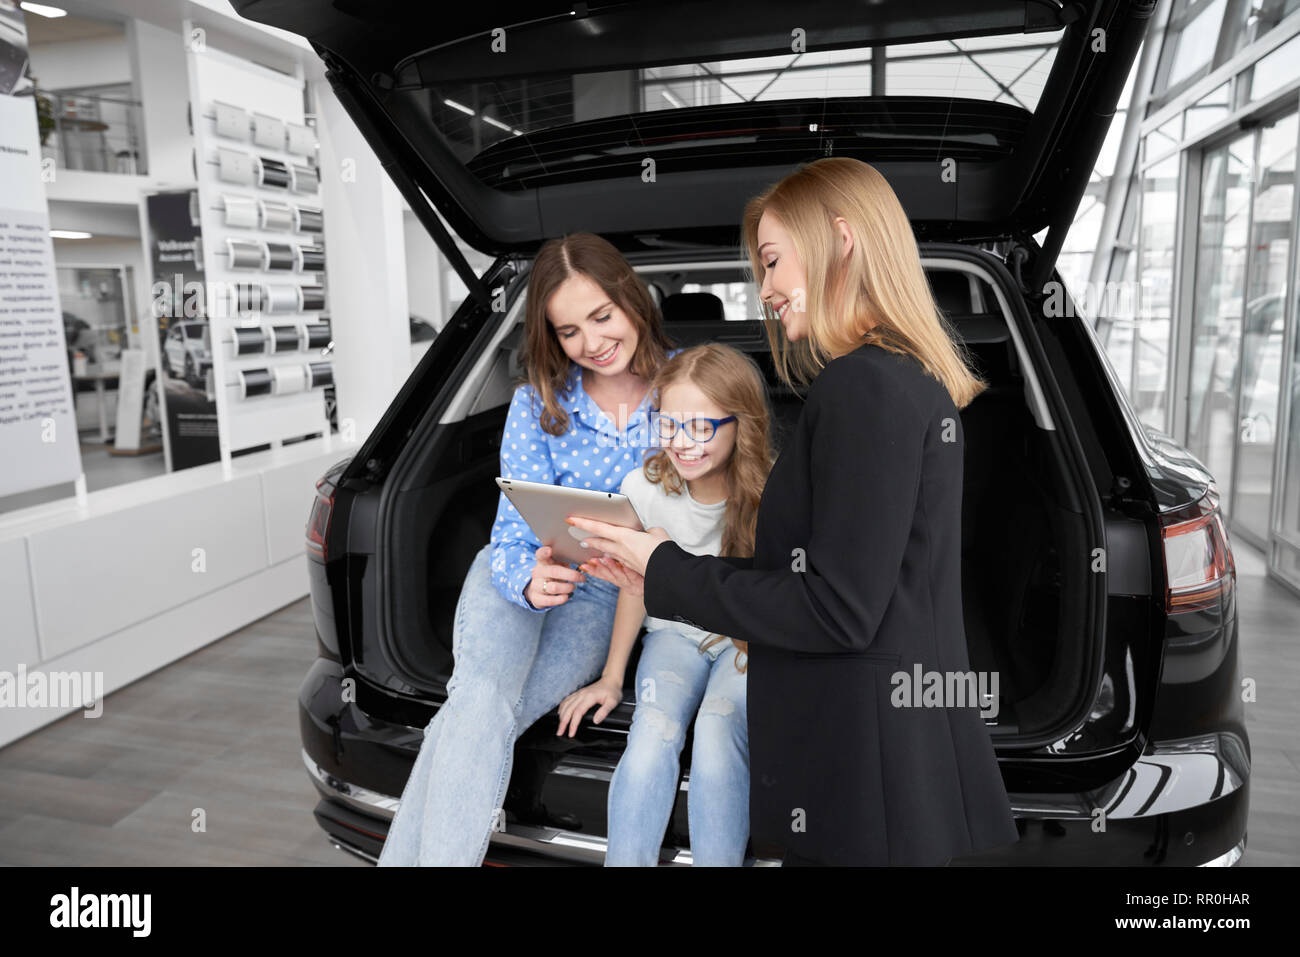 Car dealer working with clients, instructing, showing information on gadjet. Mother and daughter sitting in car trunk, communicating with manager of dealer showroom, smiling, posing. - Stock Image